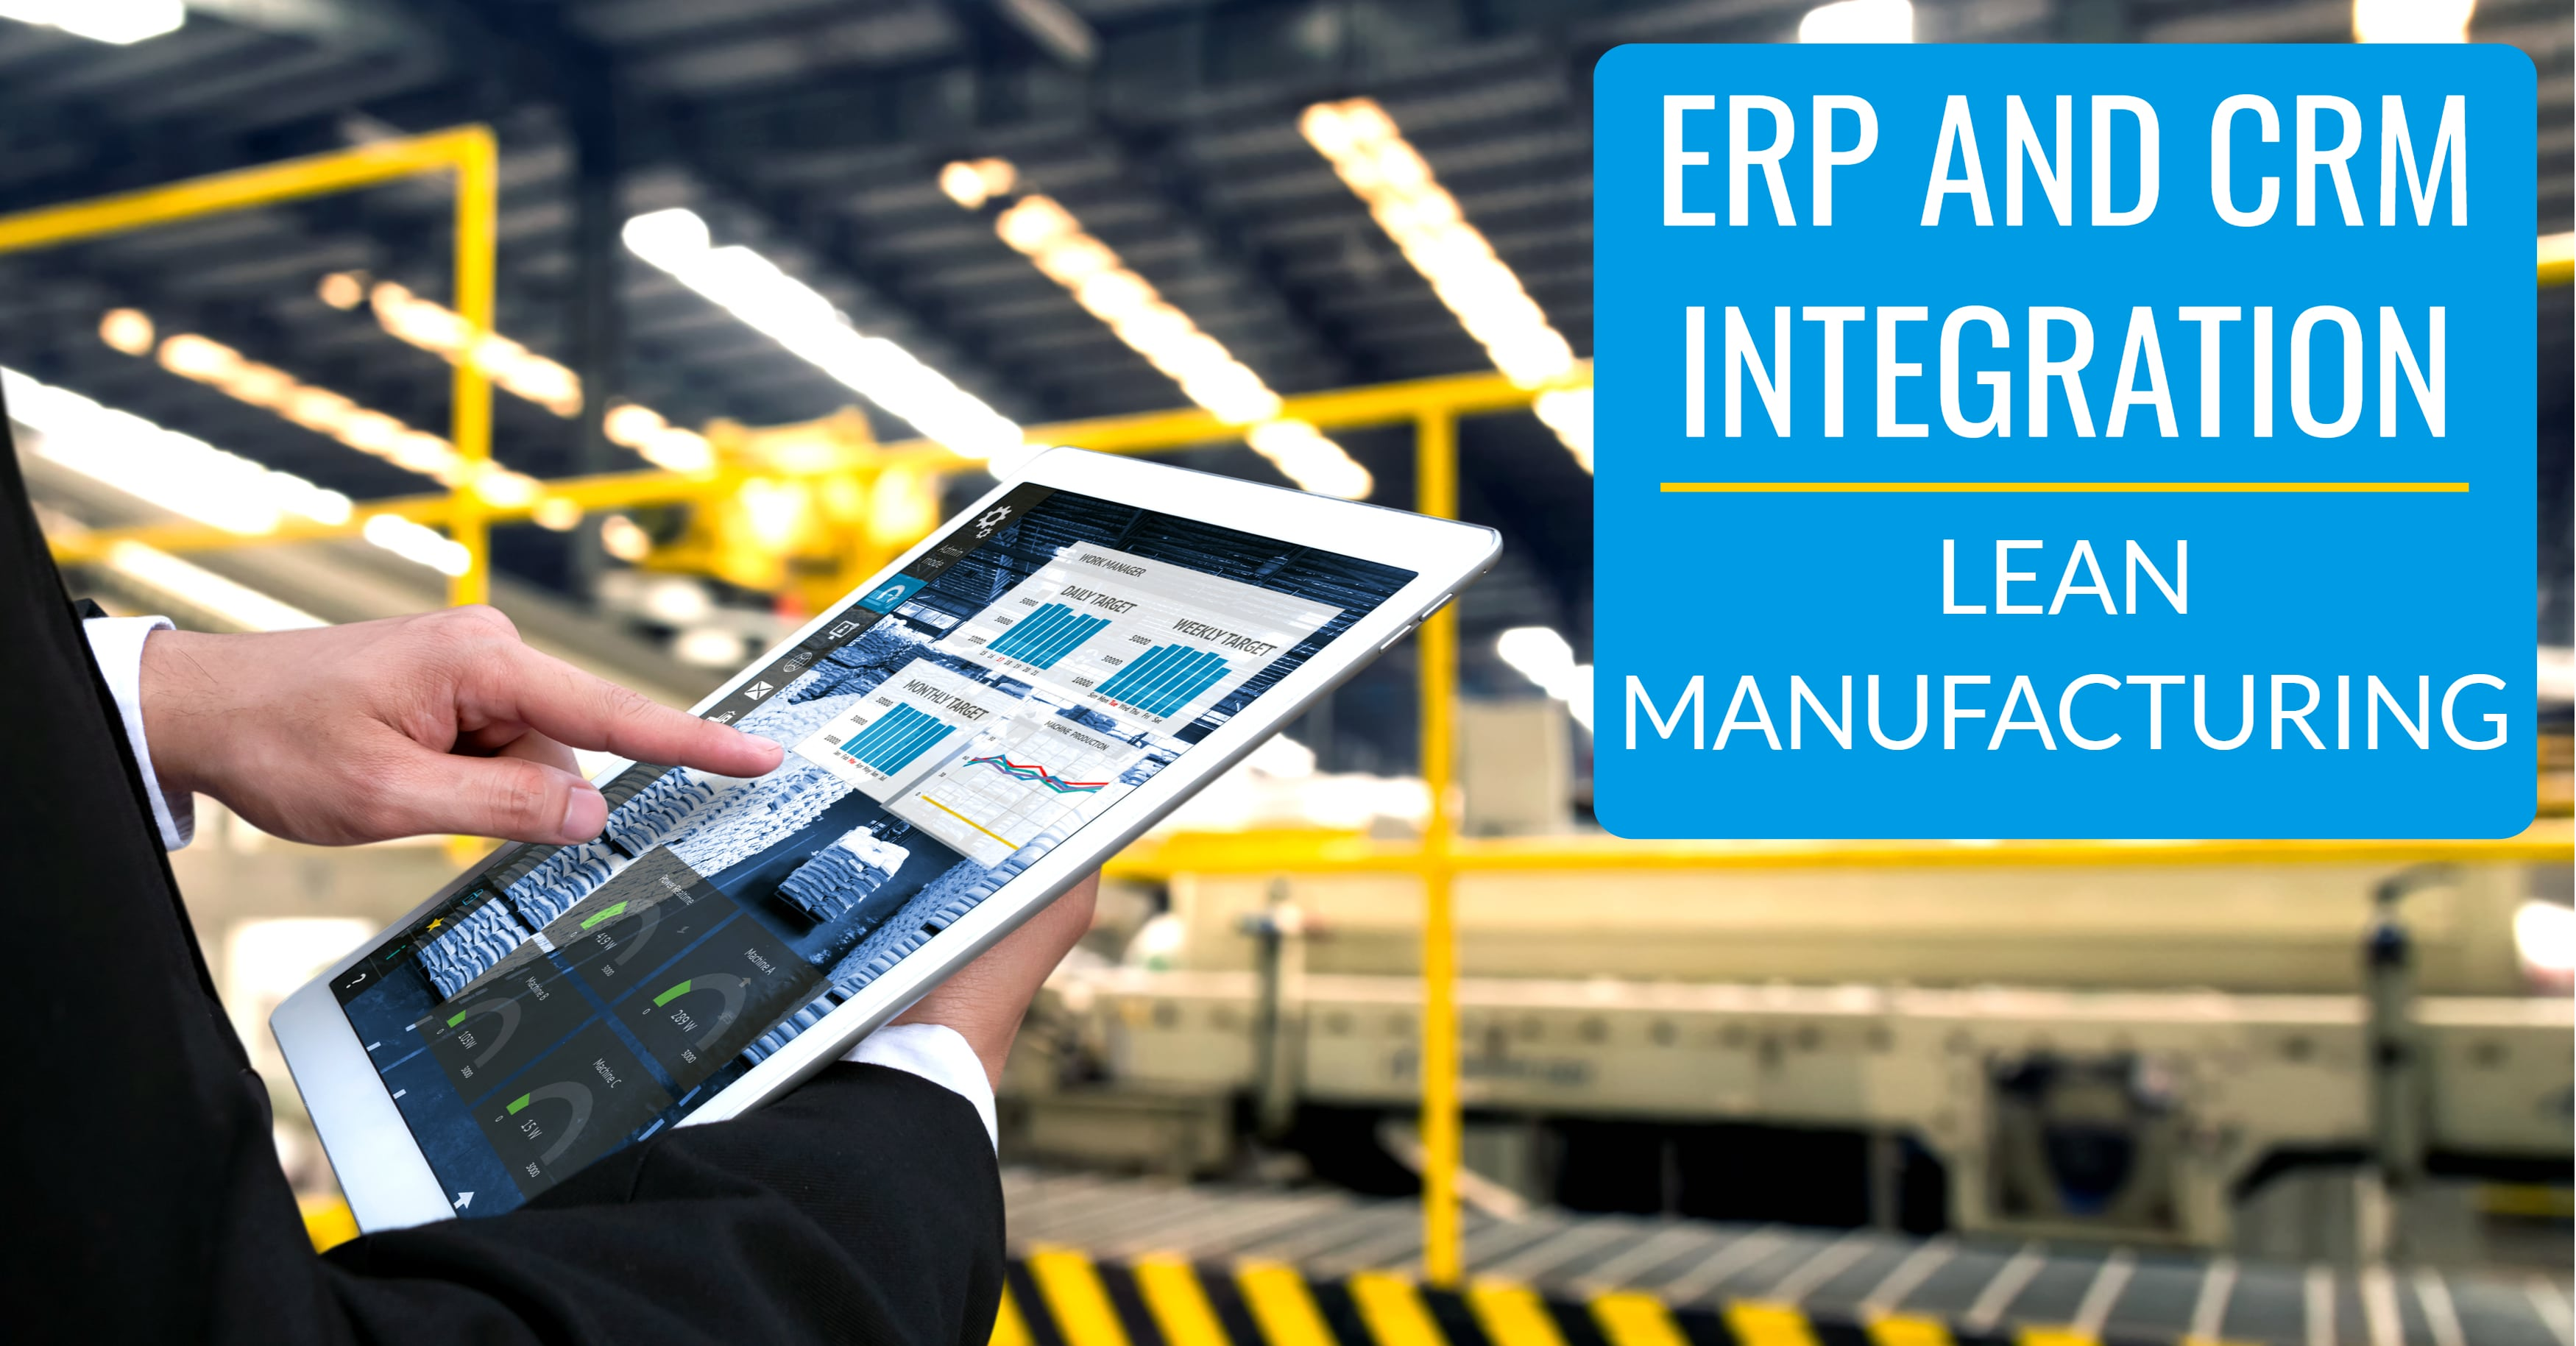 Integrate ERP and CRM to Cut Manufacturing Waste